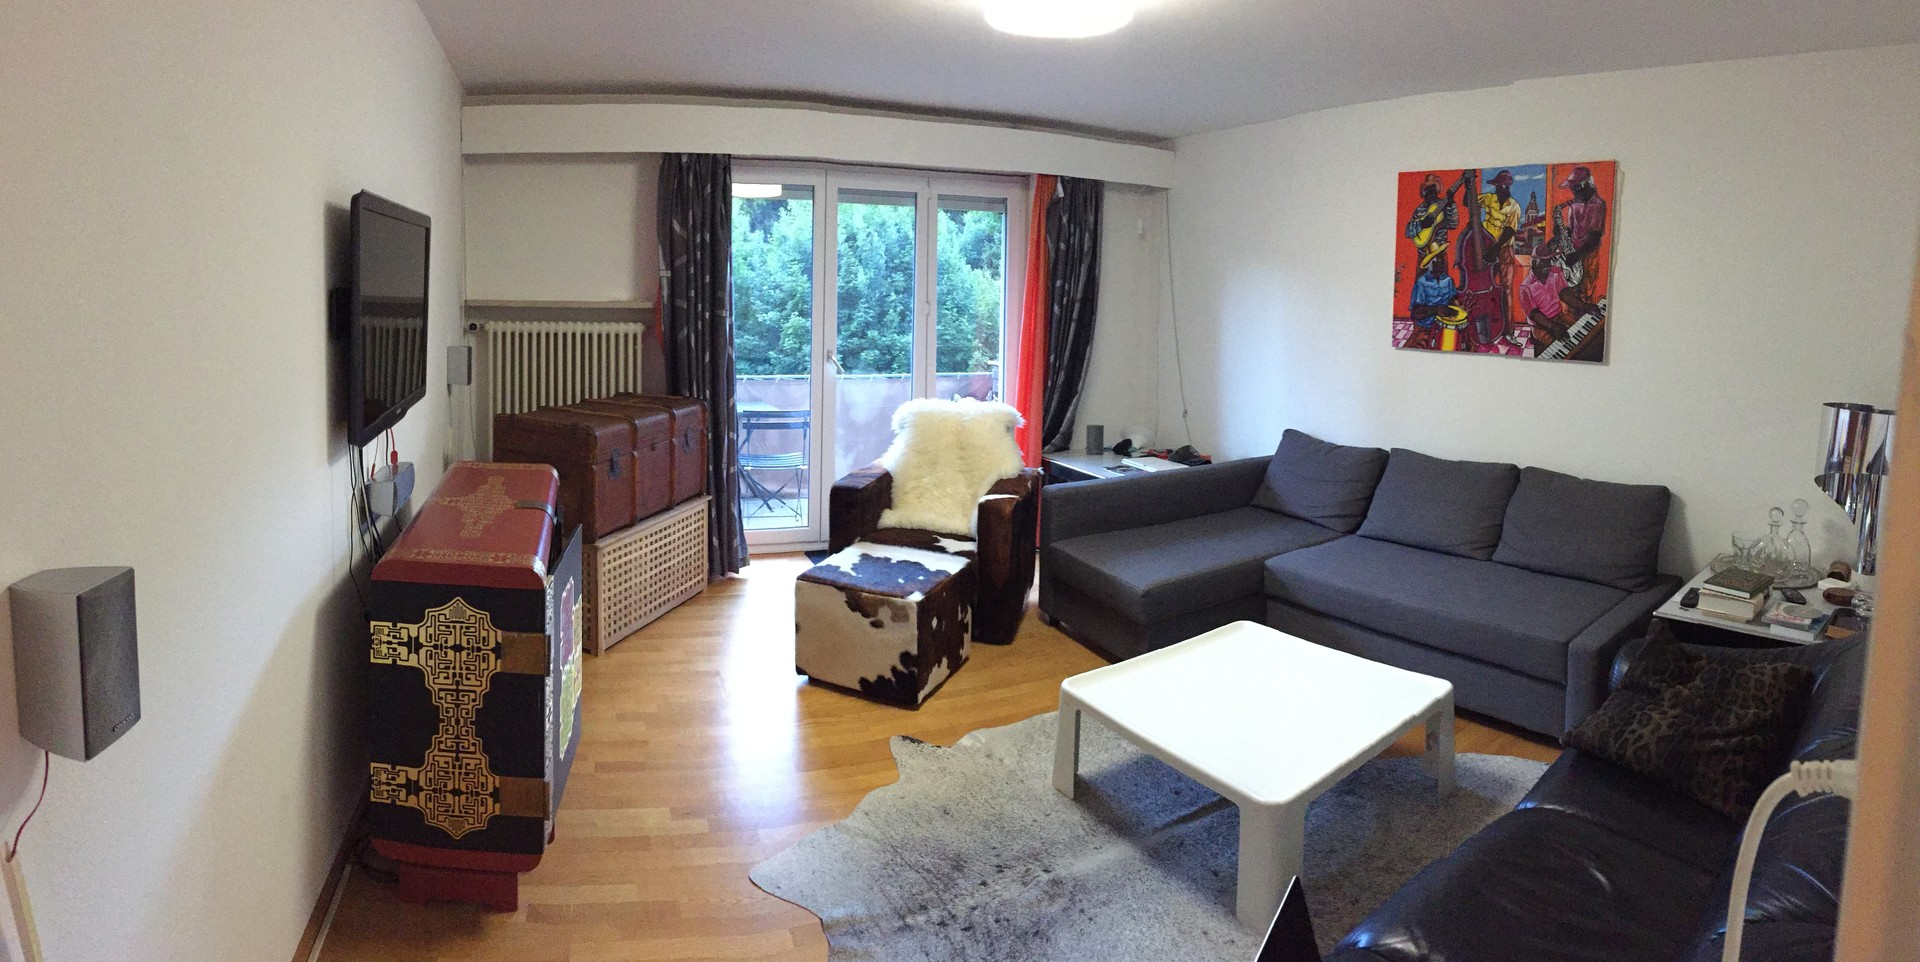 High Quality ... Large And Sunny Apartment In Zürich ...